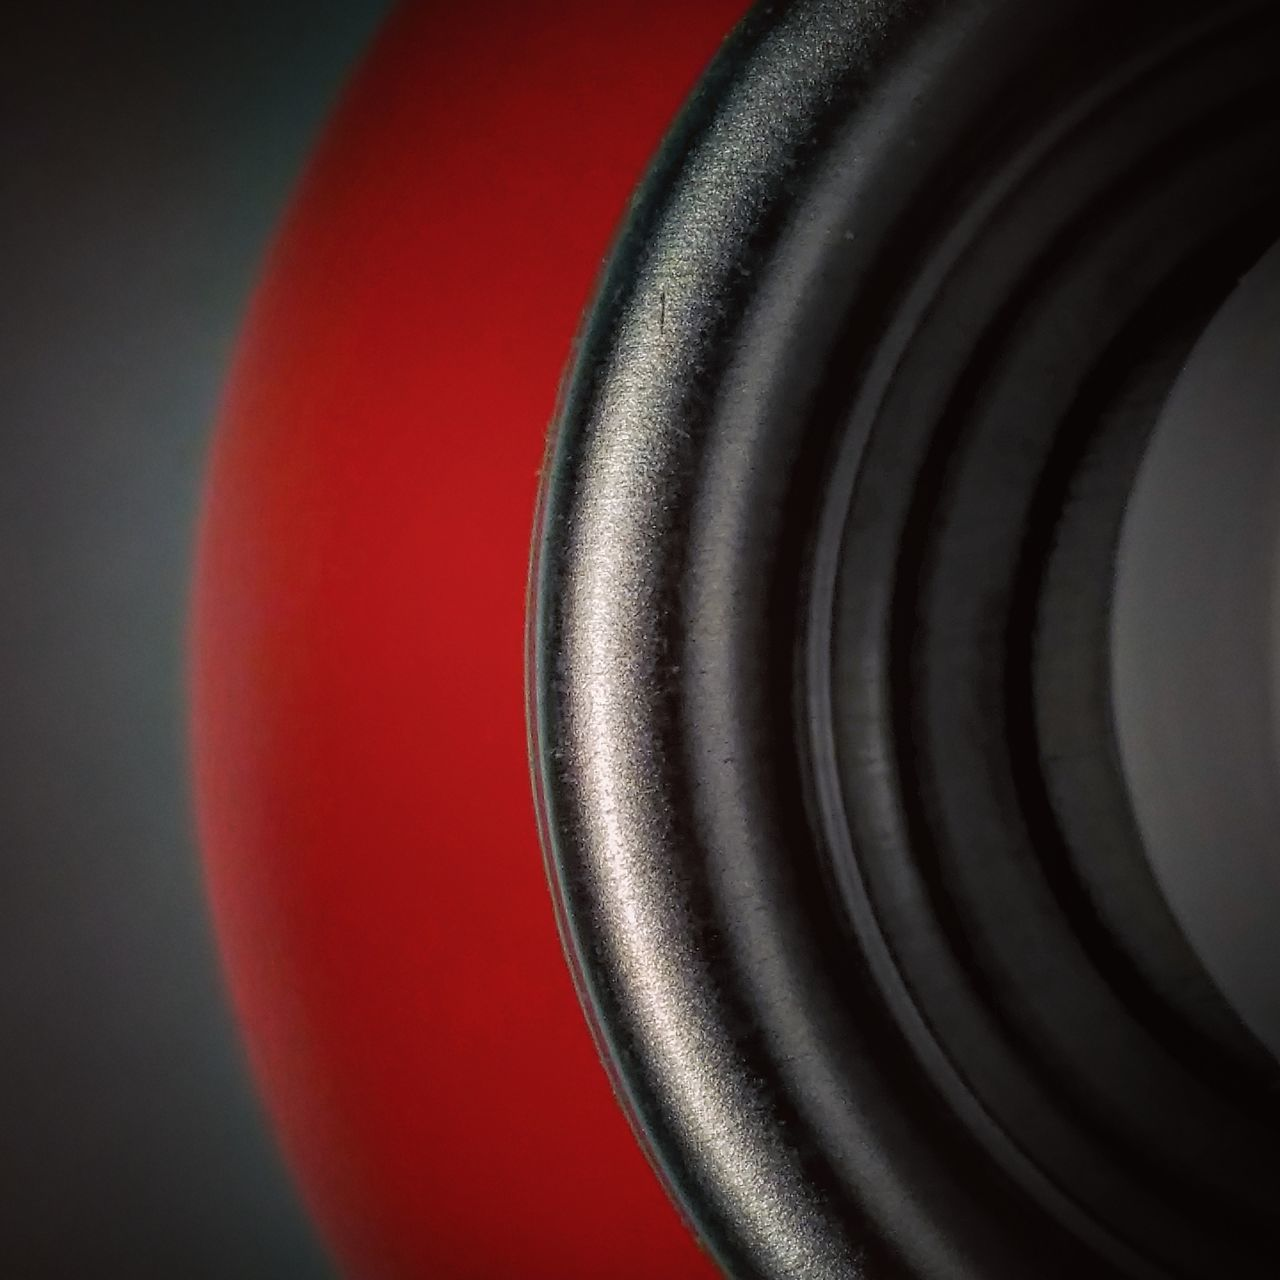 Minimalist Architecture Music Red Image Focus Technique Fineartphotography Abstract Photography Photography Fine Art Photography Aluminum VisualArt  Metal EyeEmNewHere Visual Feast